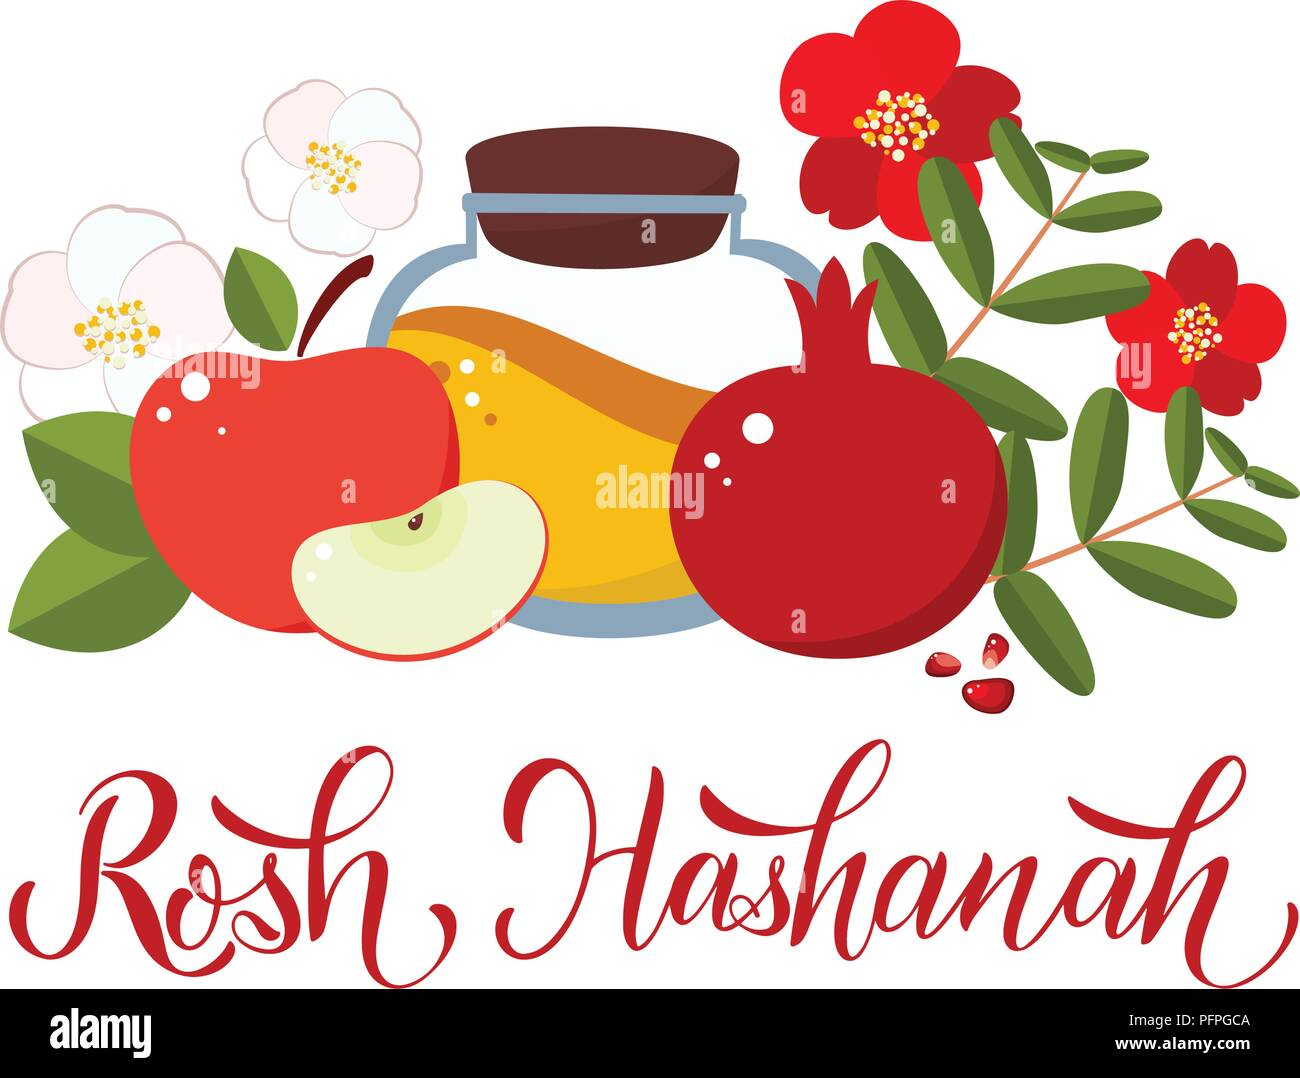 Rosh Hashanah Shana Tova Calligraphy Text For Jewish New Year